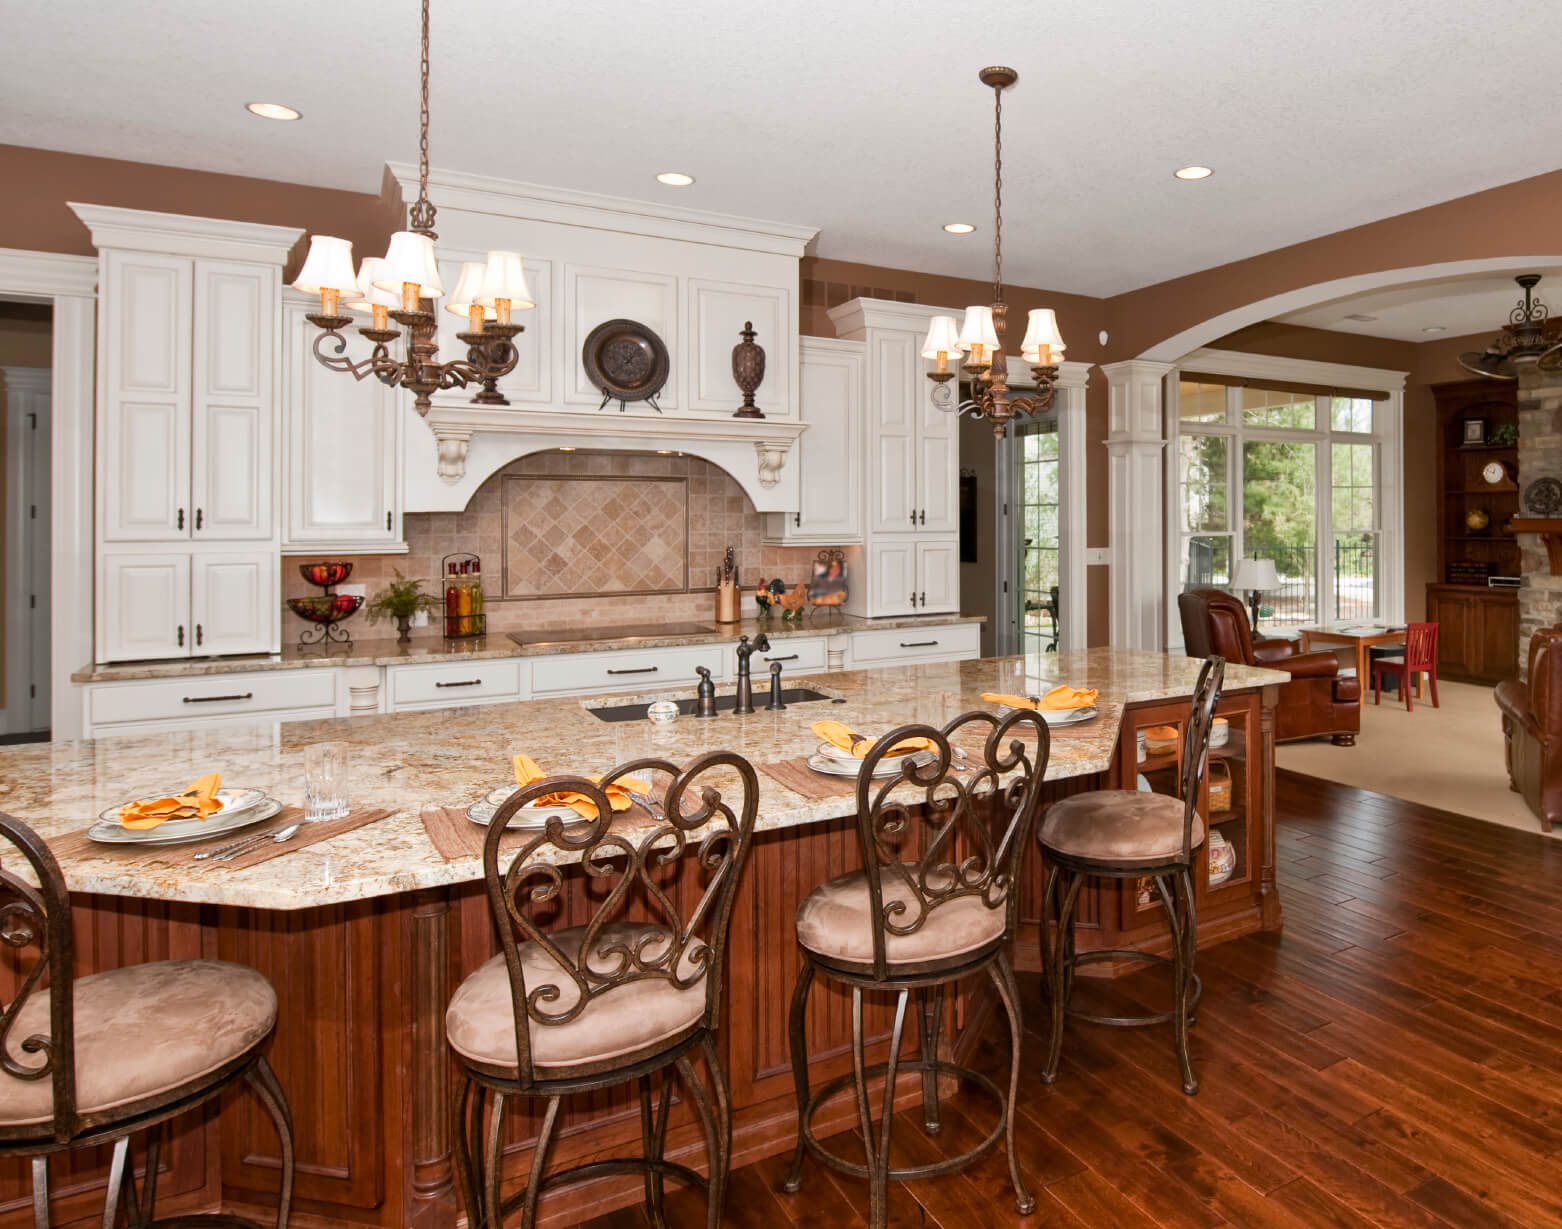 Large Open Kitchen Features Immense Island Done In Natural Wood Tones With Built